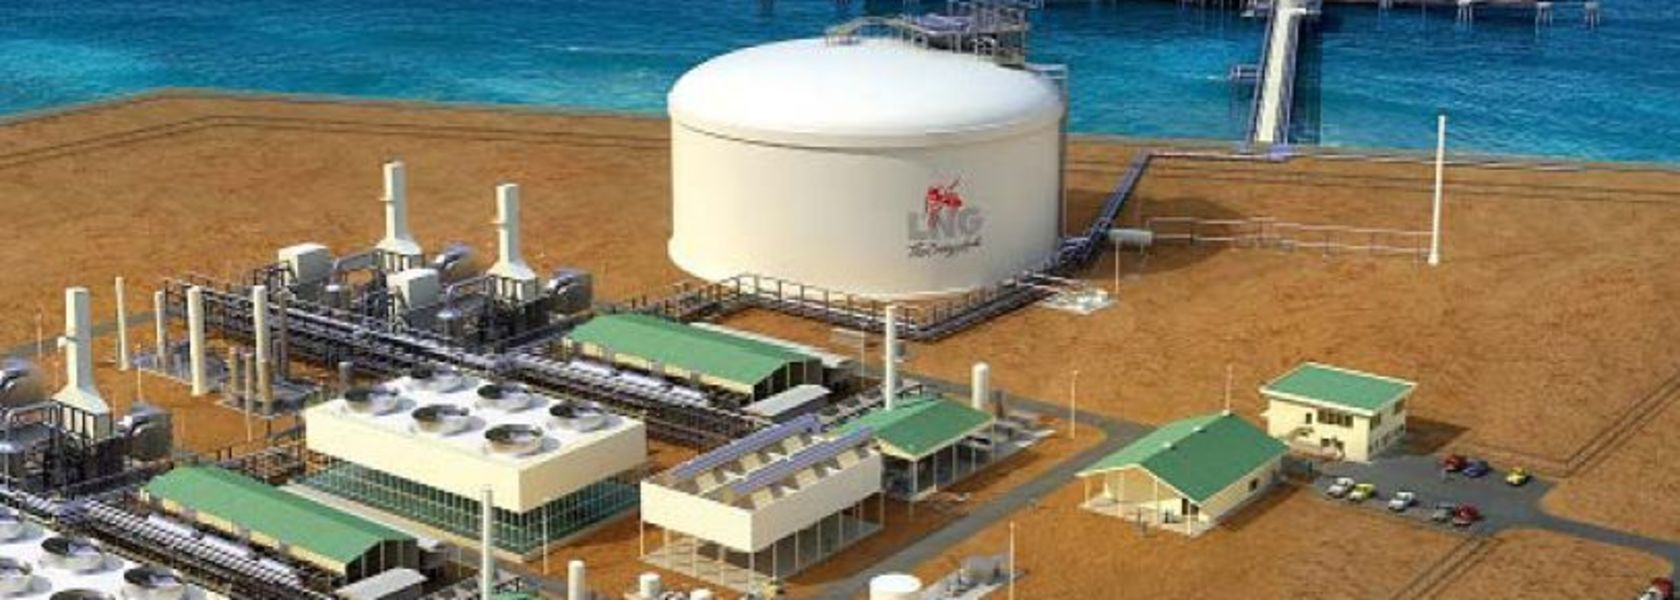 LNG gets ball rolling on Fisherman's Landing